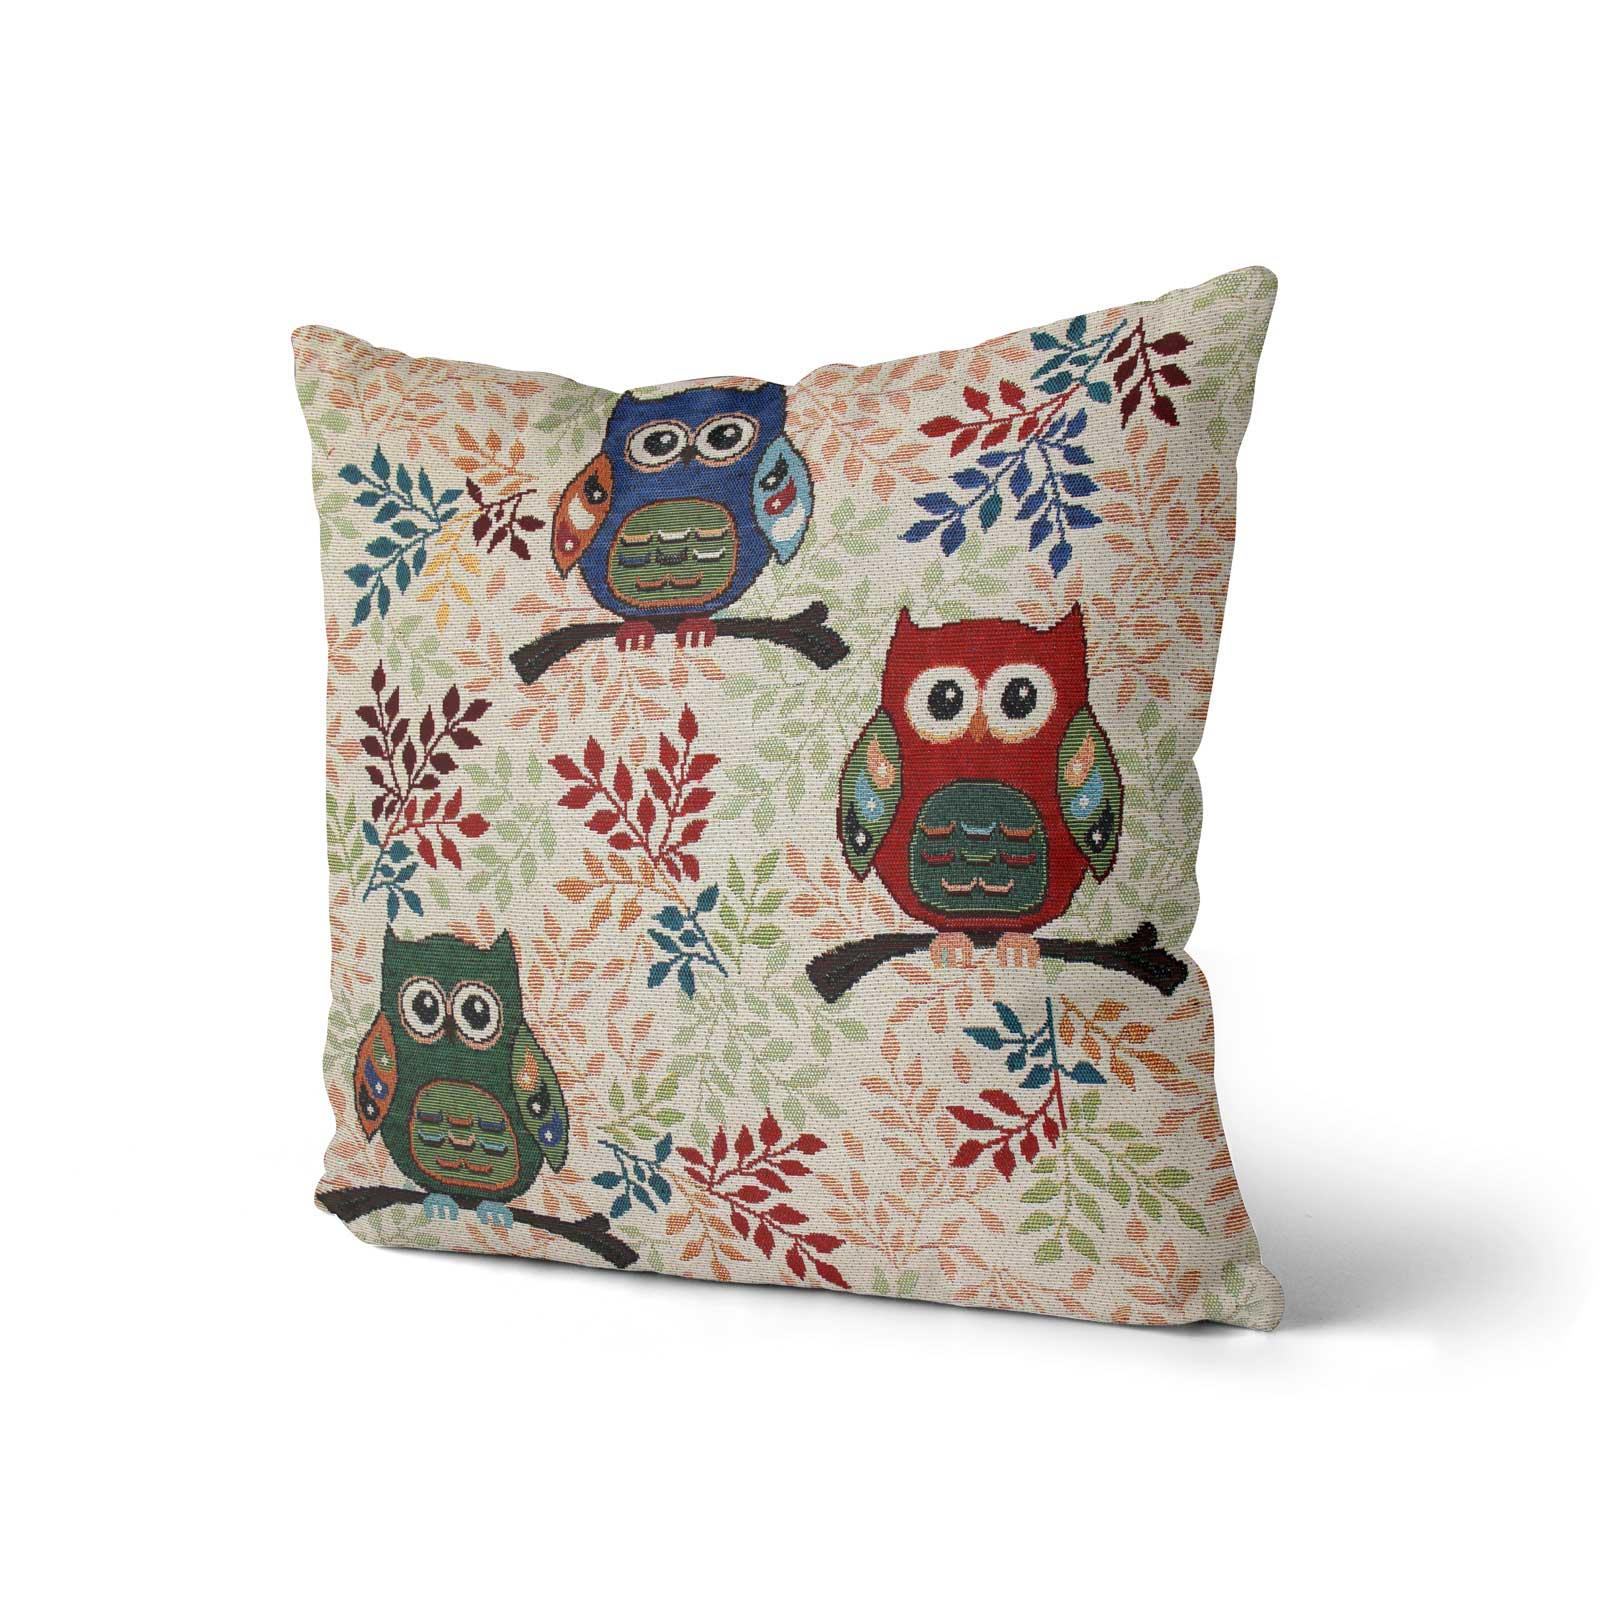 Tapestry-Cushion-Covers-Vintage-Pillow-Cover-Collection-18-034-45cm-Filled-Cushions thumbnail 206